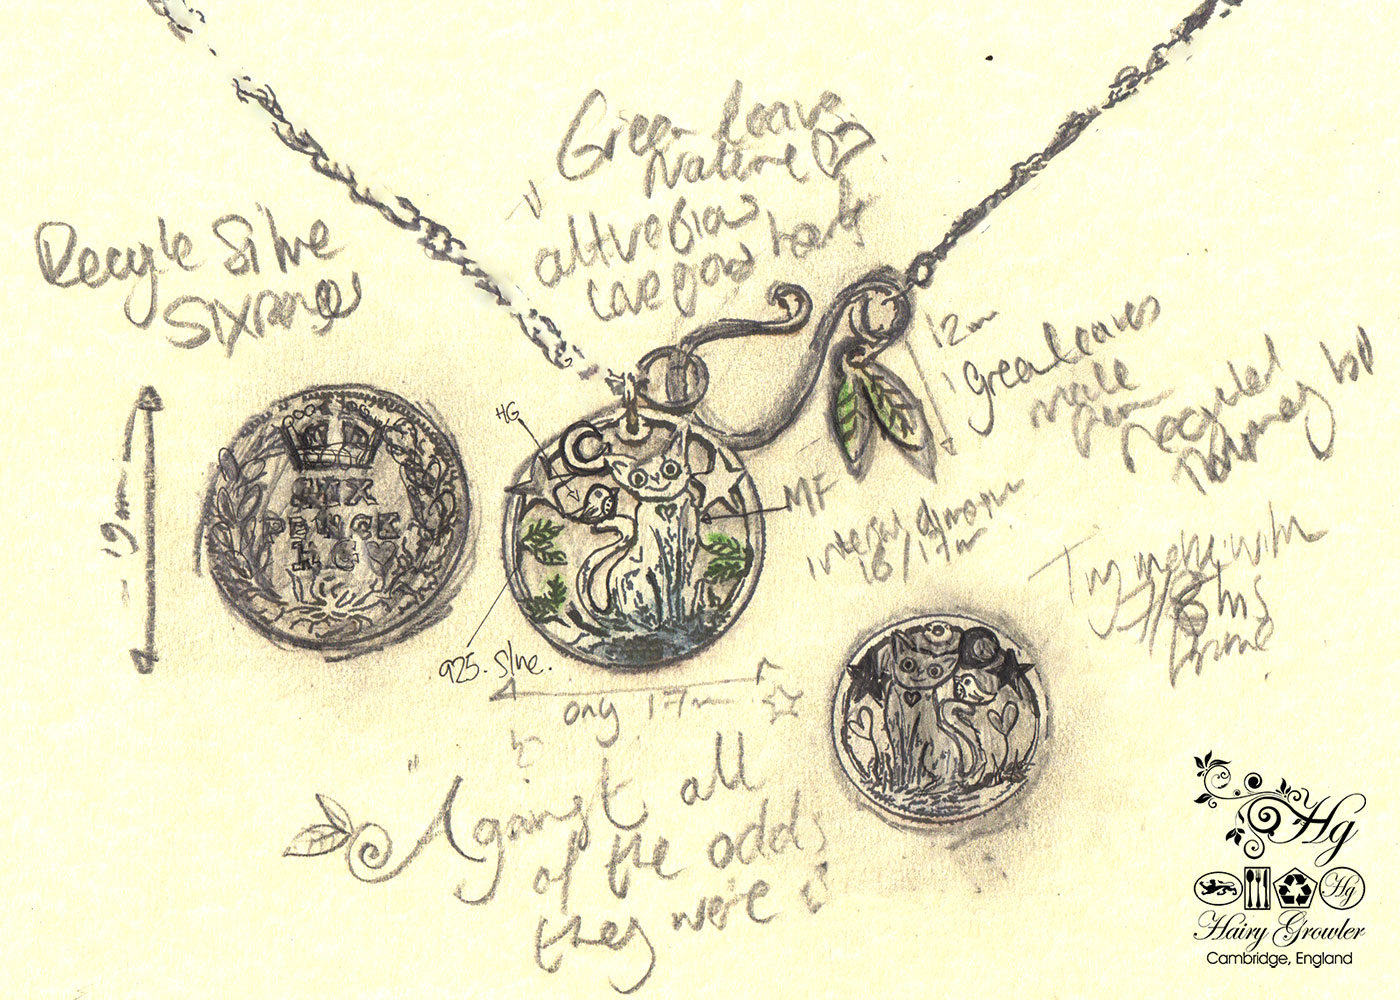 Handcrafted and recycled silver sixpence coin cat and bird pendant necklace